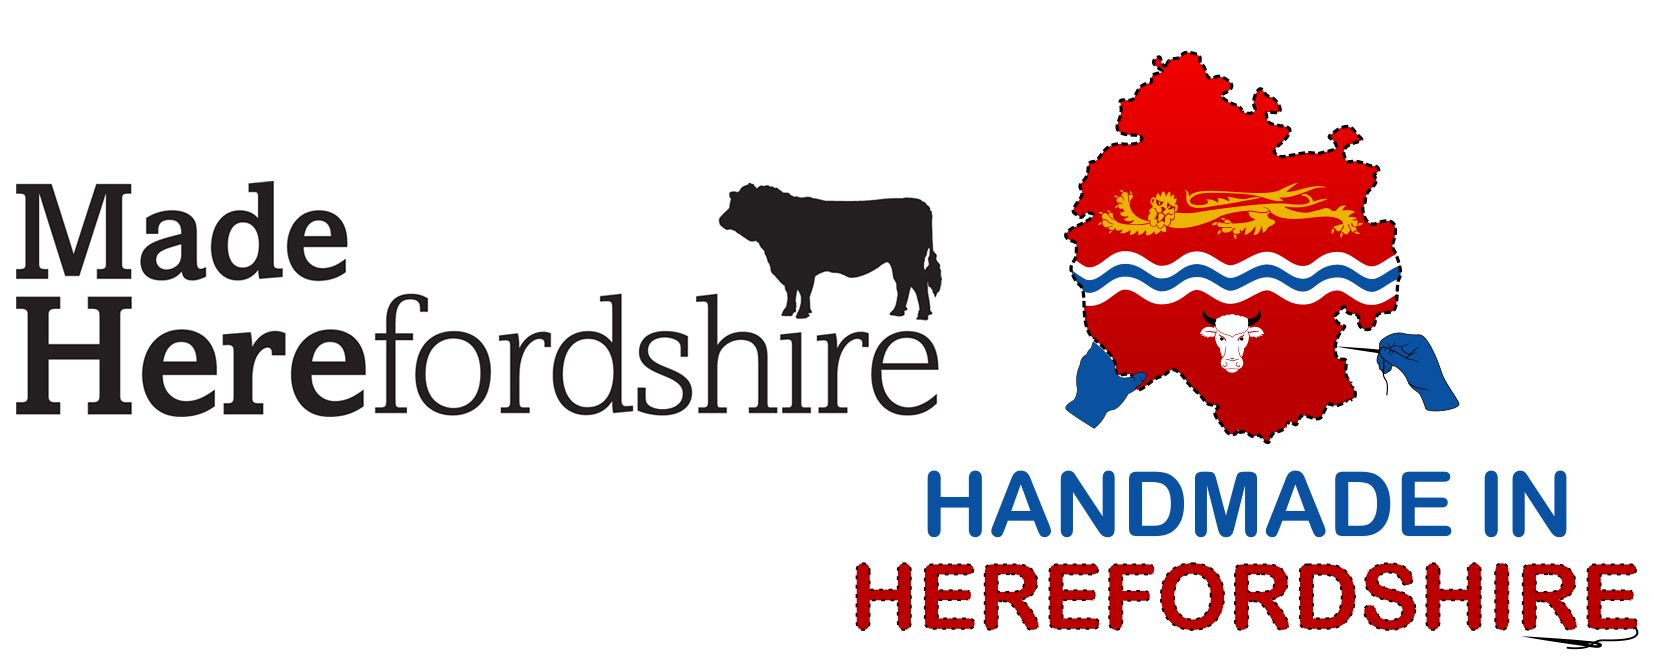 Handmade in Herefordshire organises shopping days with a difference.  All the exhibitors hand make their items in the County of #Herefordshire.  Read about them in November issue of absolute Herefordshire http://www.absoluteherefordshire.co.uk/index.html